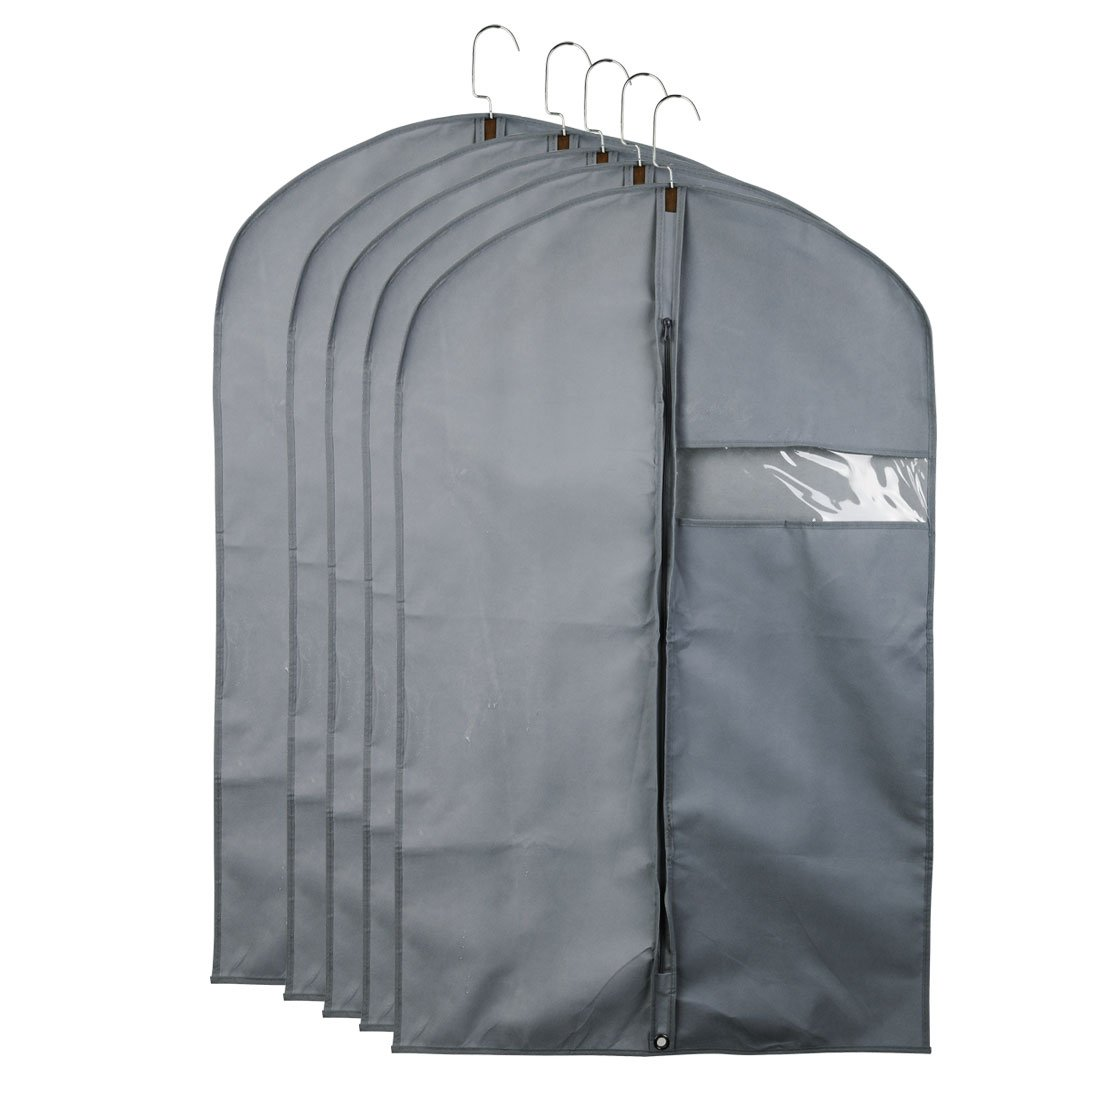 uxcell Pack of 5 Gray Breathable Garment Bags Storage Travel,Suit Carriers, Garment Covers Folding Suits, Dresses, Linens, Clothes Storage Clear Window,40'' x 24''(LW)